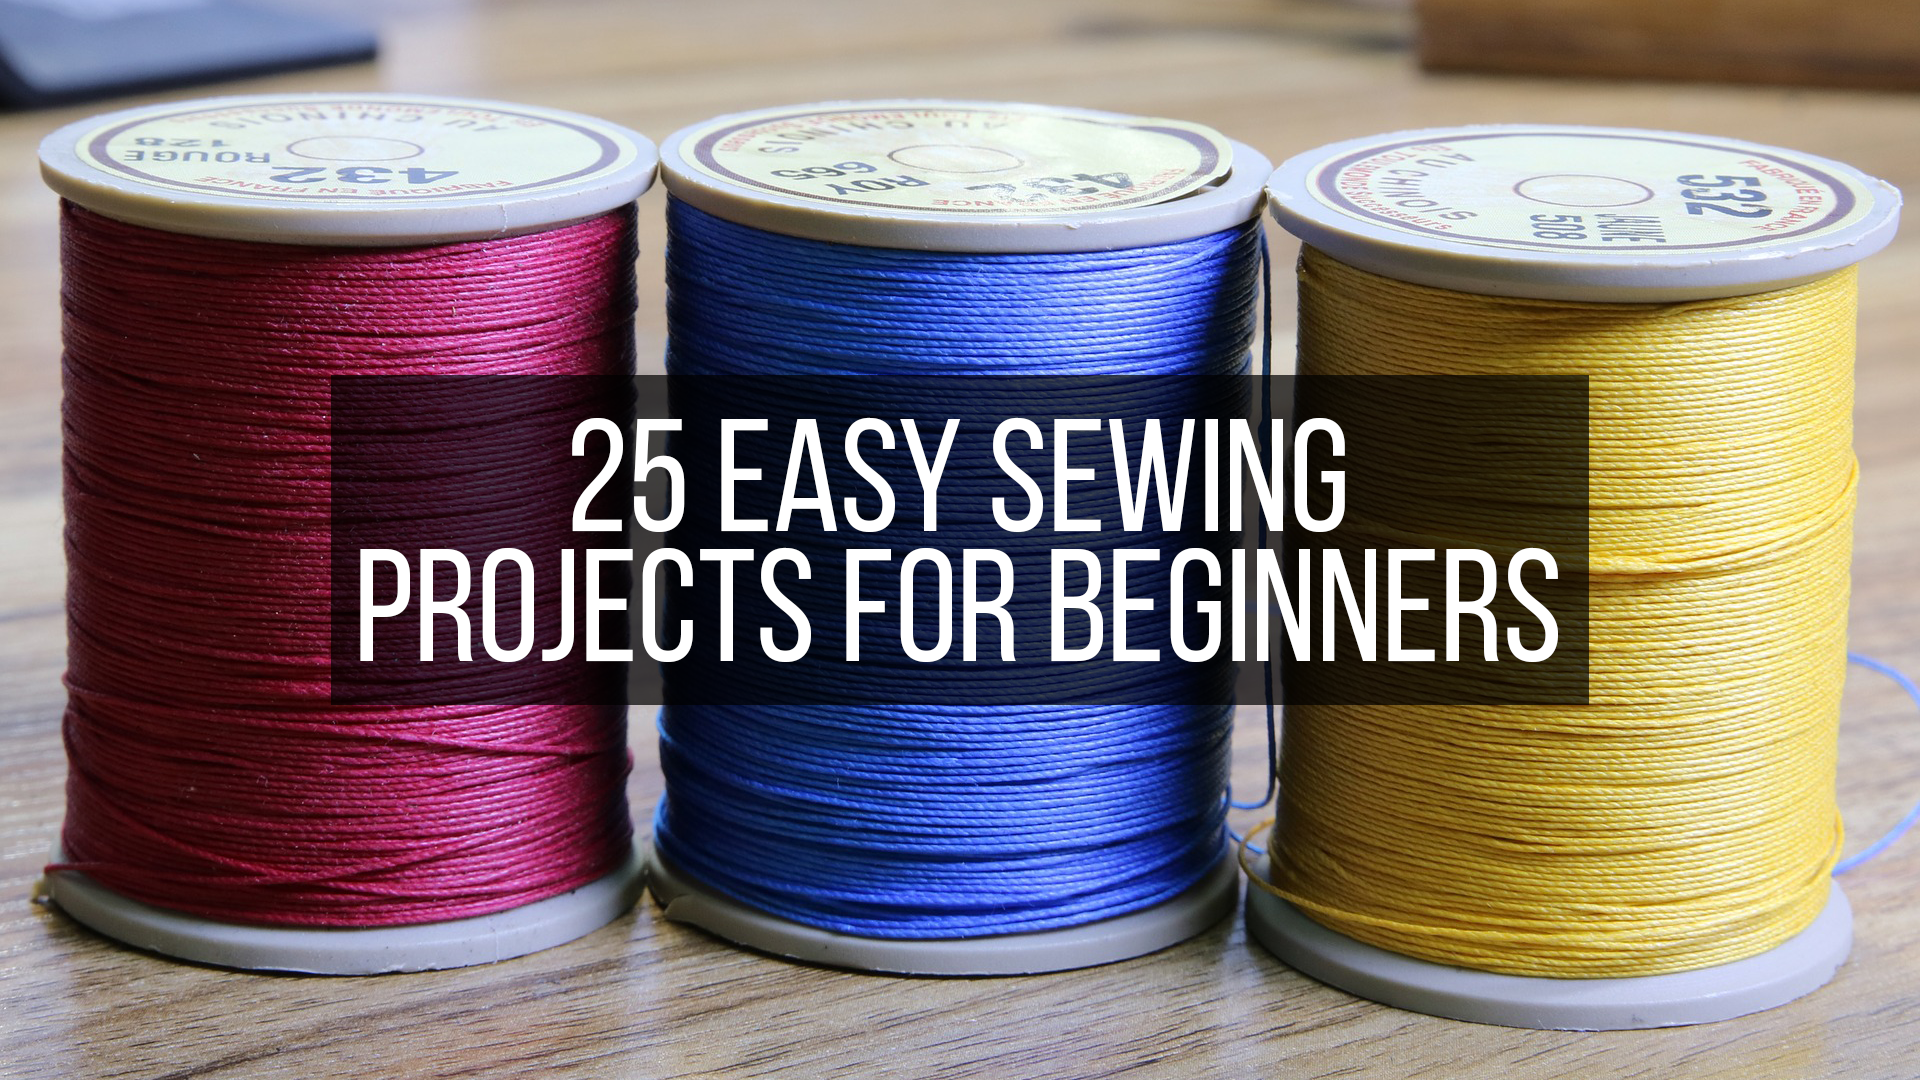 25 Easy Sewing Projects for Beginners Featured Image